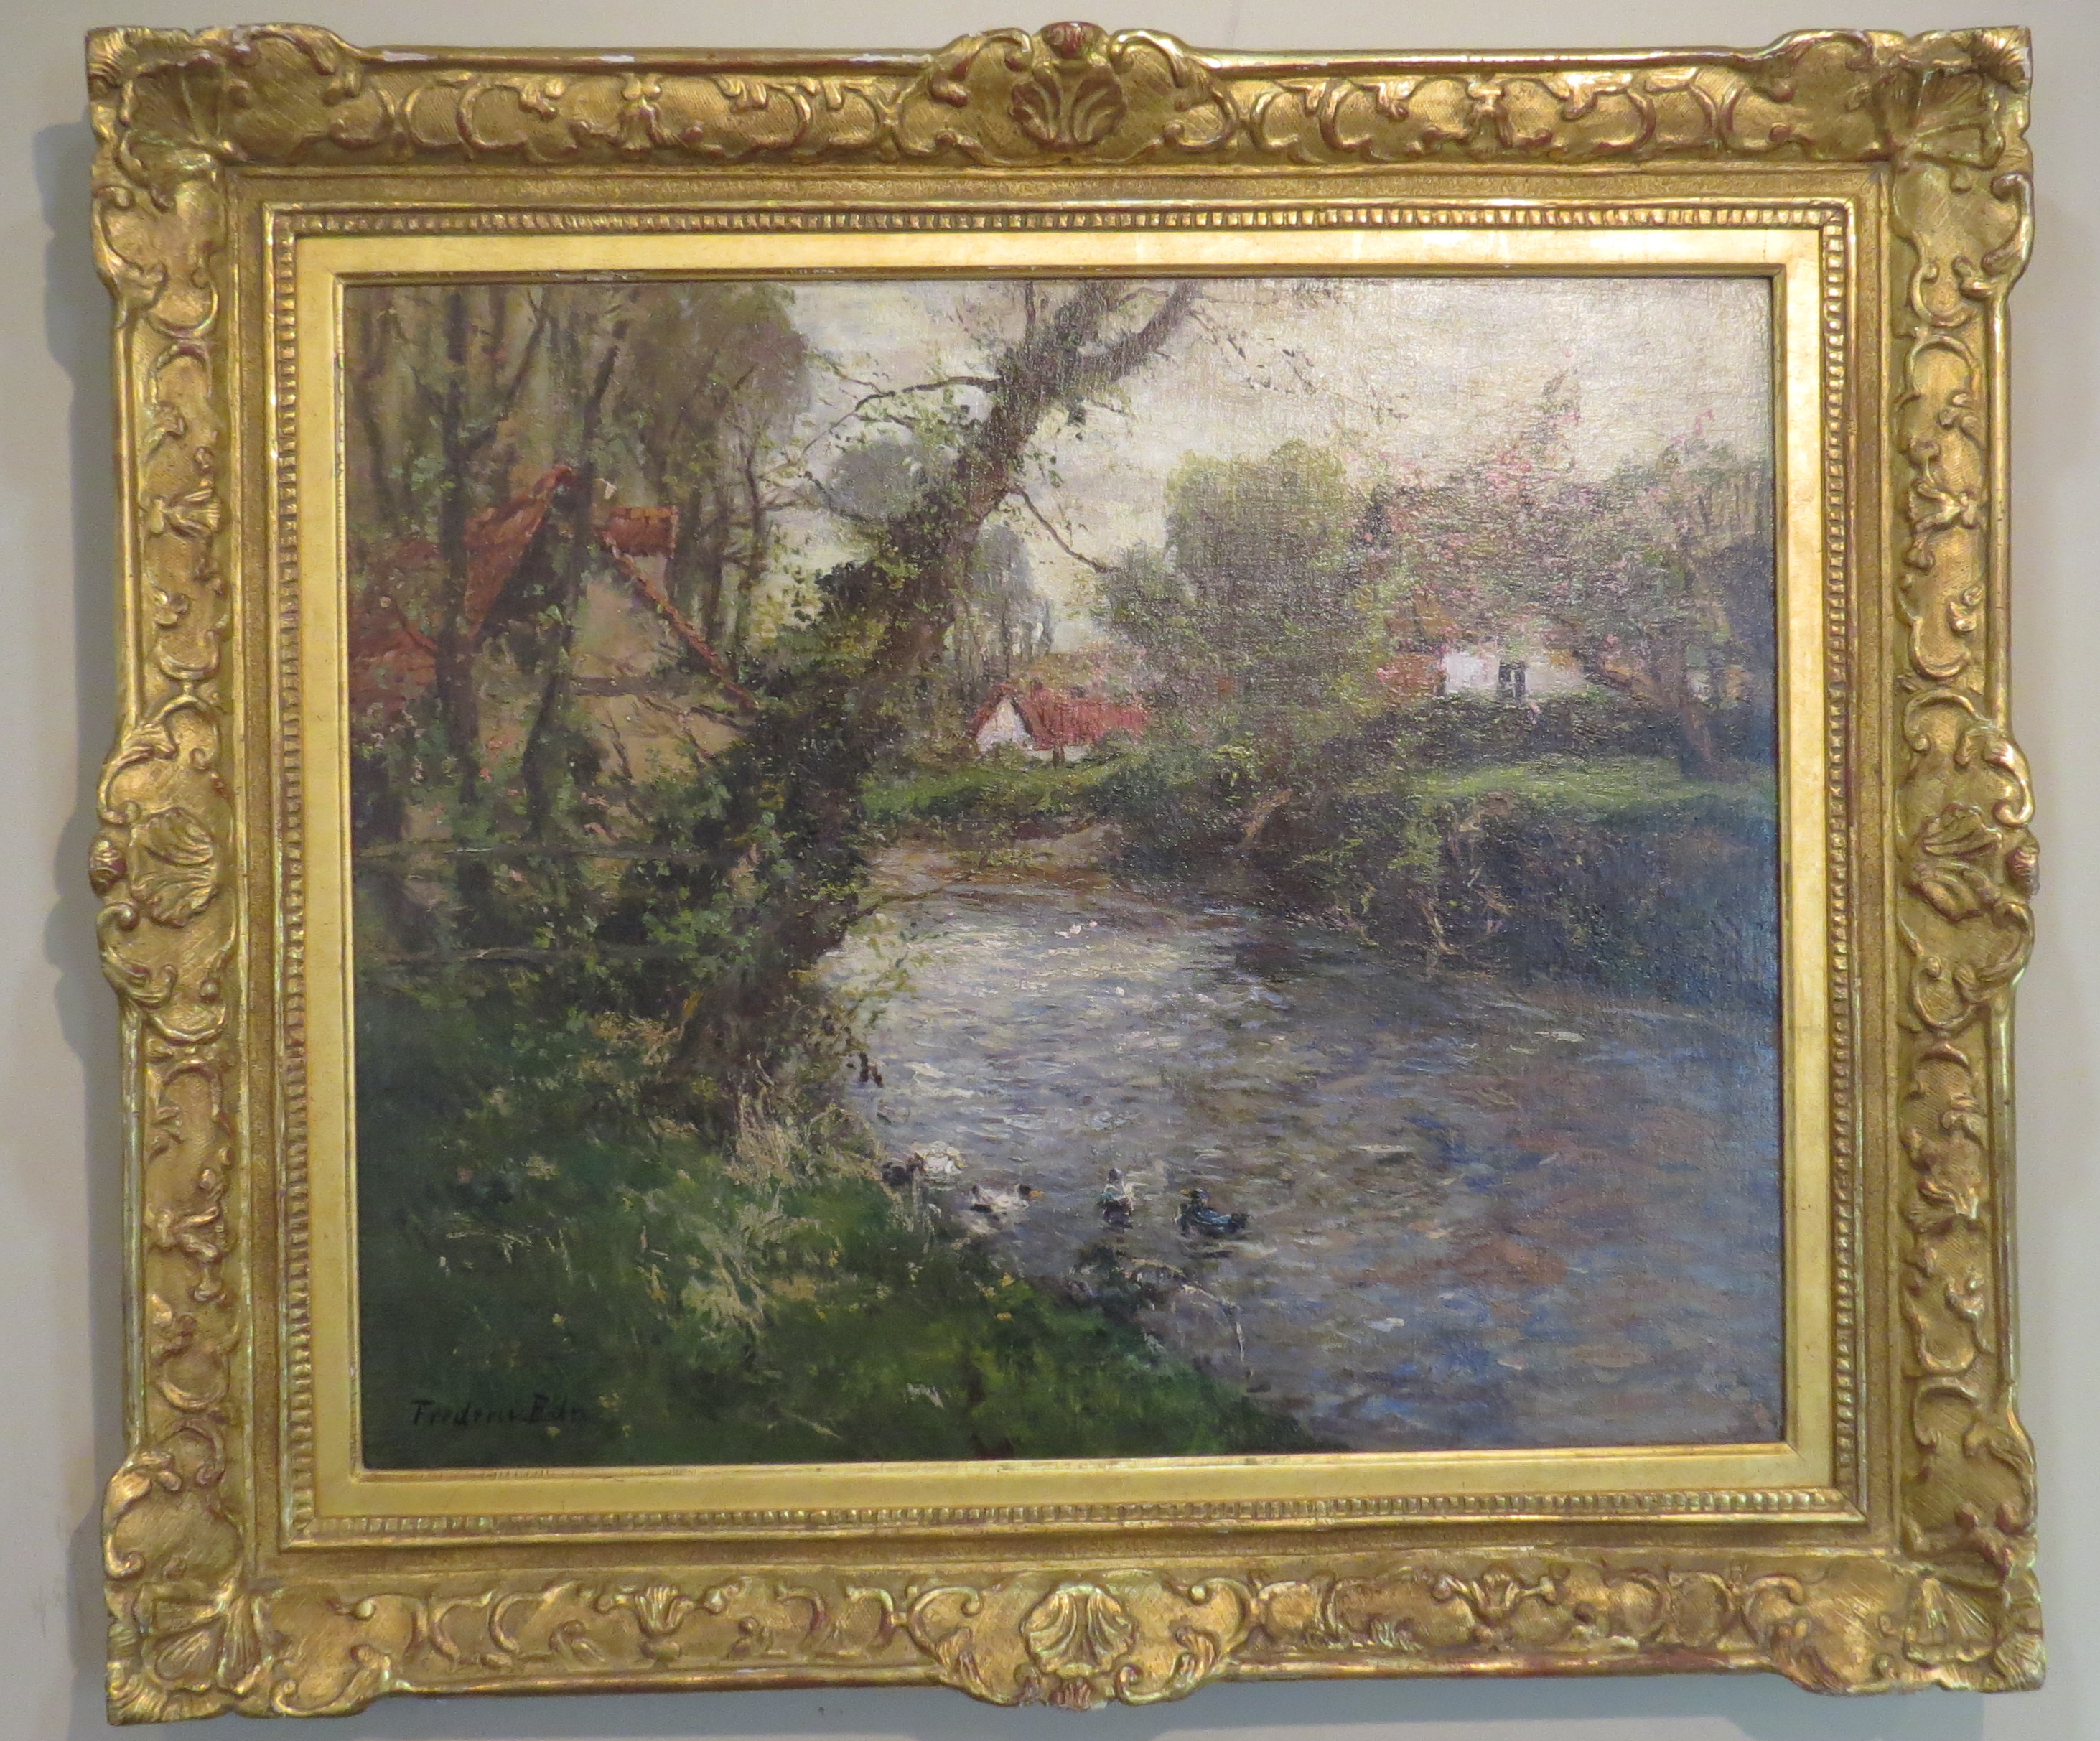 A Landscape Scene with Stream & Cottage, Oil on Canvas